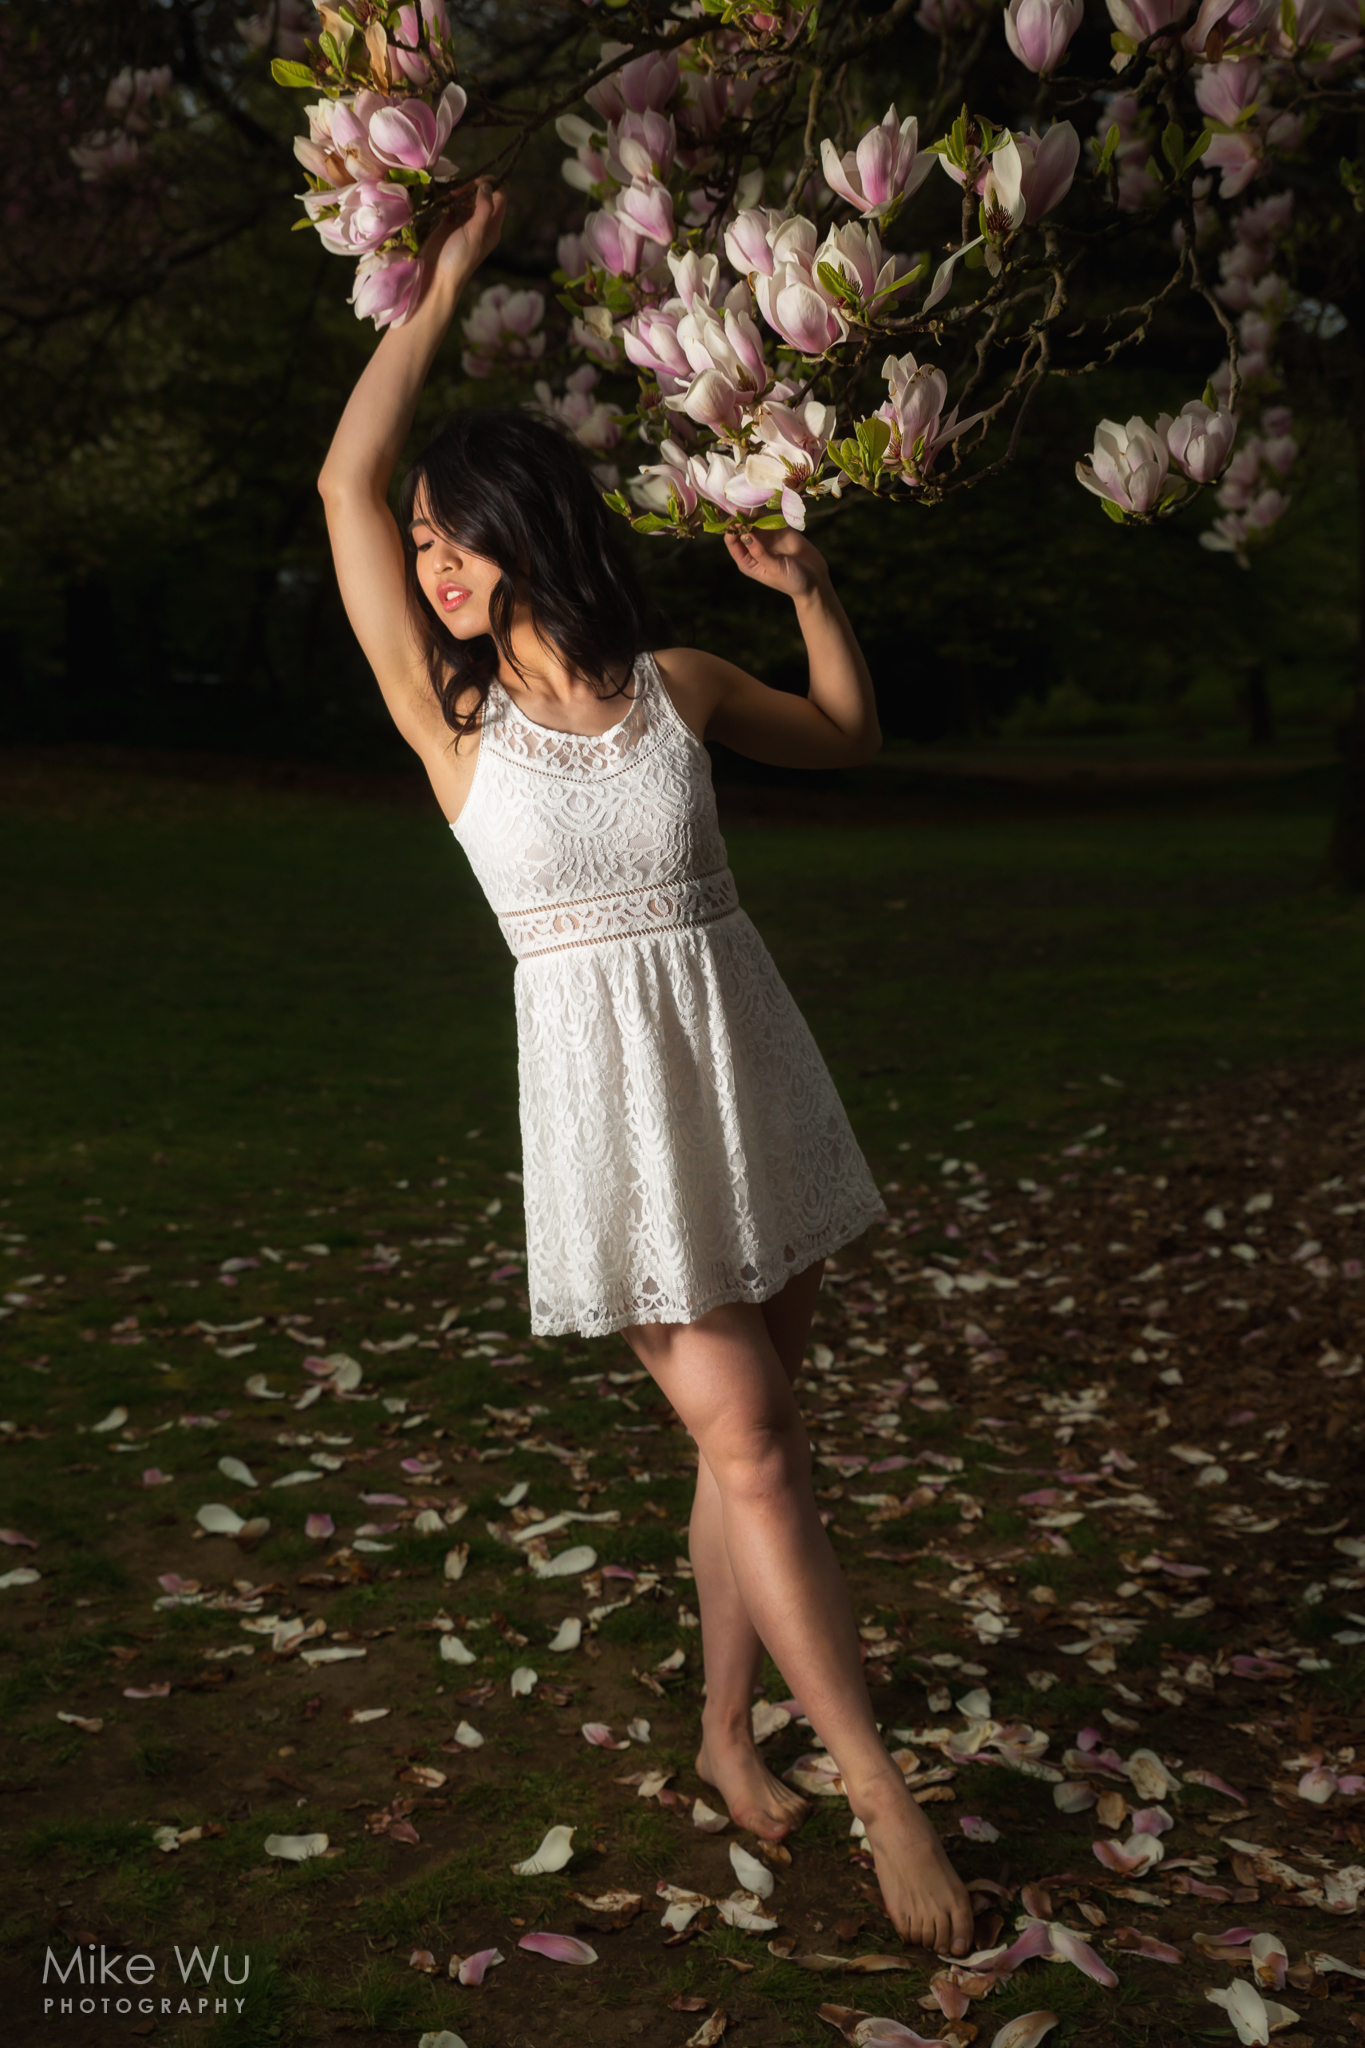 flowers, white dress, hss, park, vancouver, beauty, graceful, elegant, spring, blossom, bloom, outdoors, vancouver, queen elizabeth park